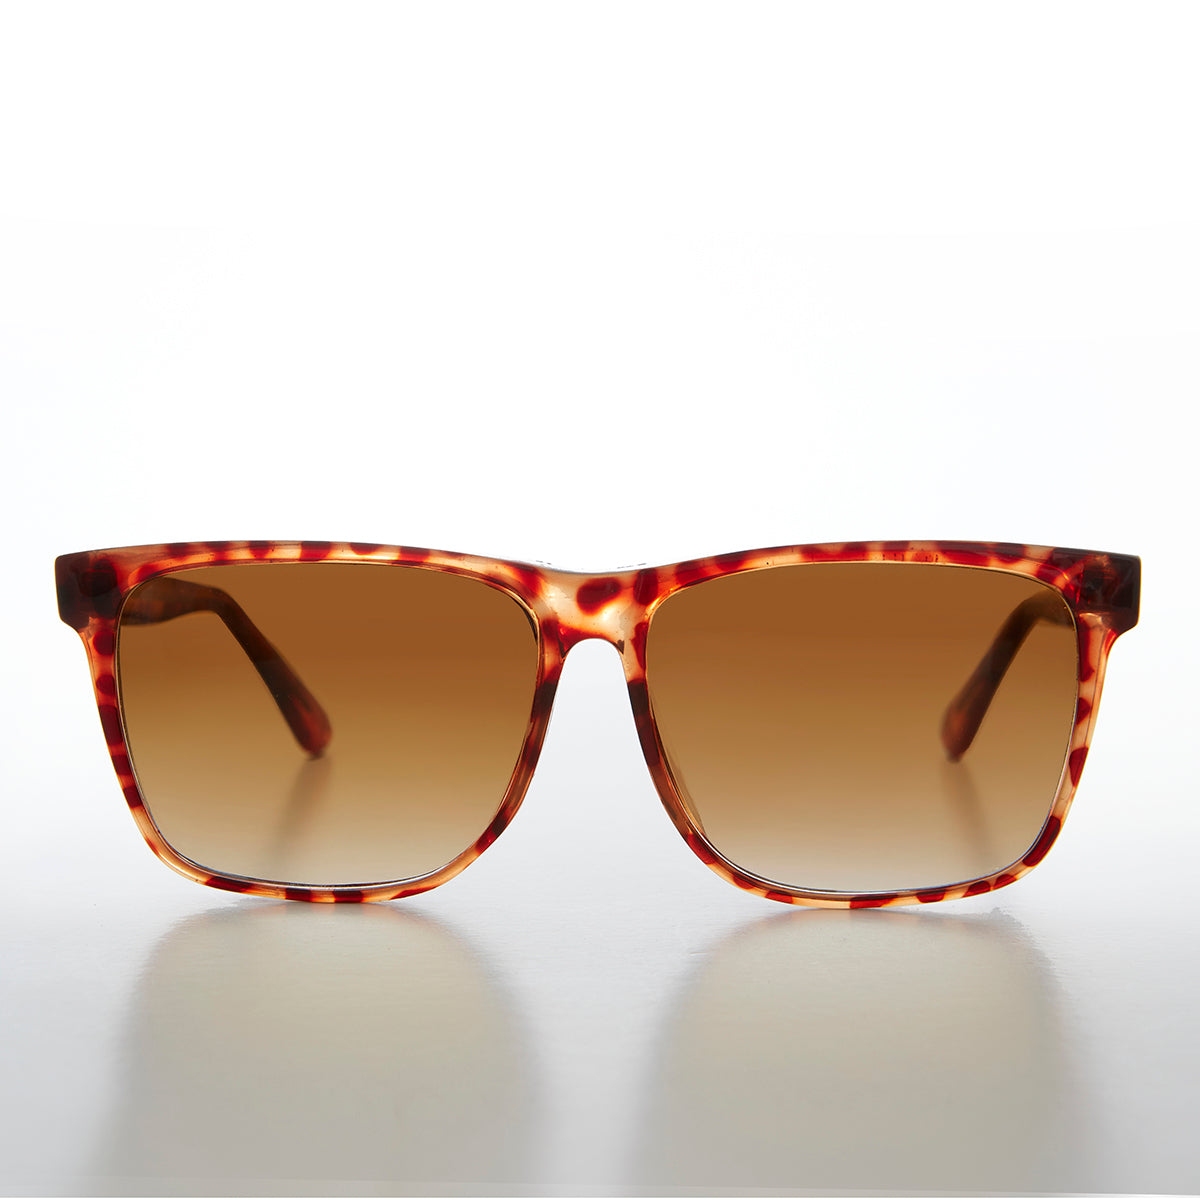 Simple Wide Square Vintage Tortoise Sunglass